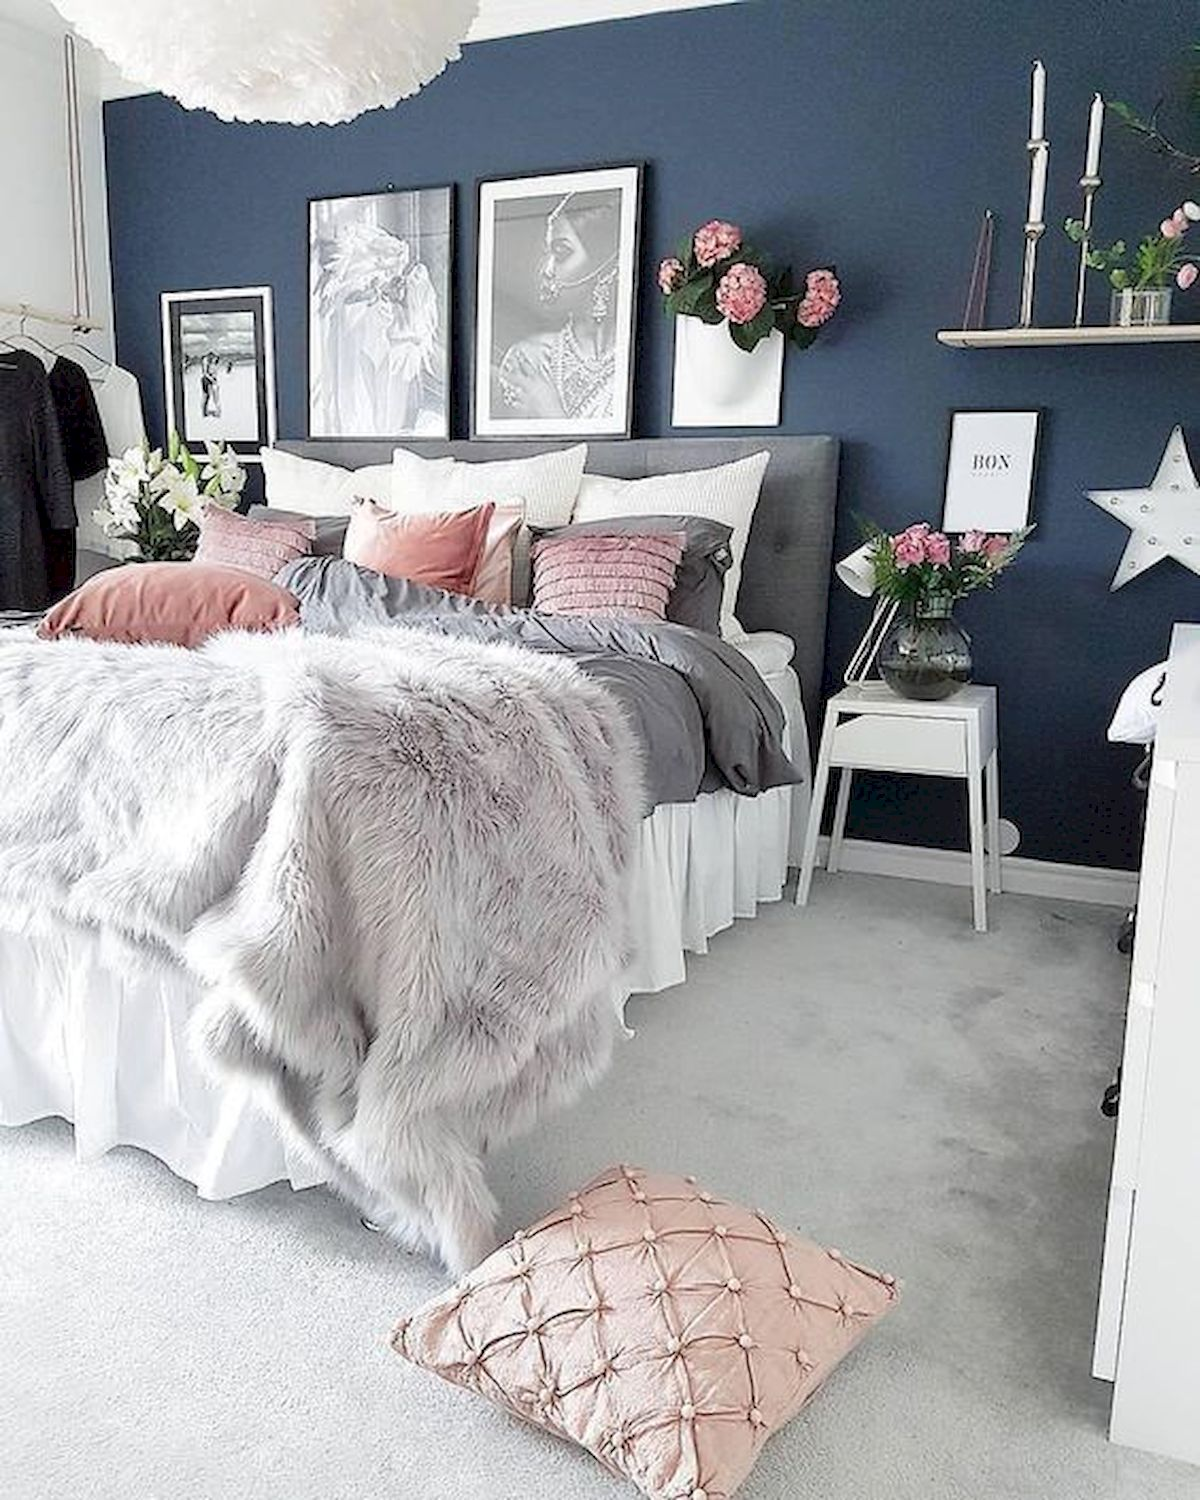 82 Cool Bedroom Ideas For Creative Couples 51 Artmyideas